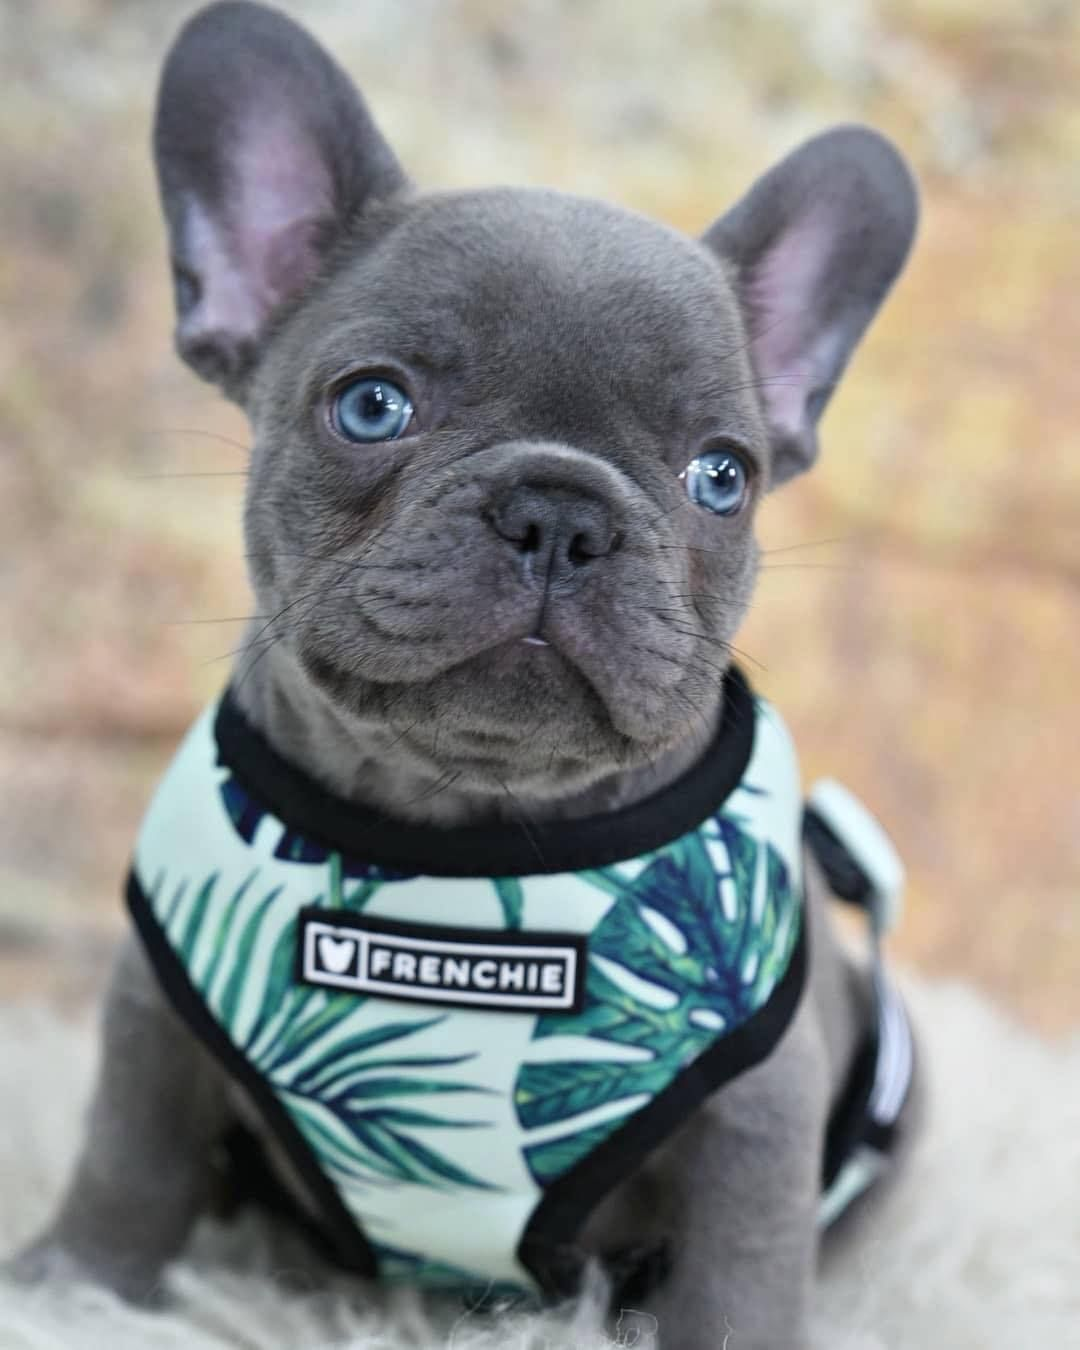 Source Instagram Com Frenchie Bulldog Raise Your Hand If You Want